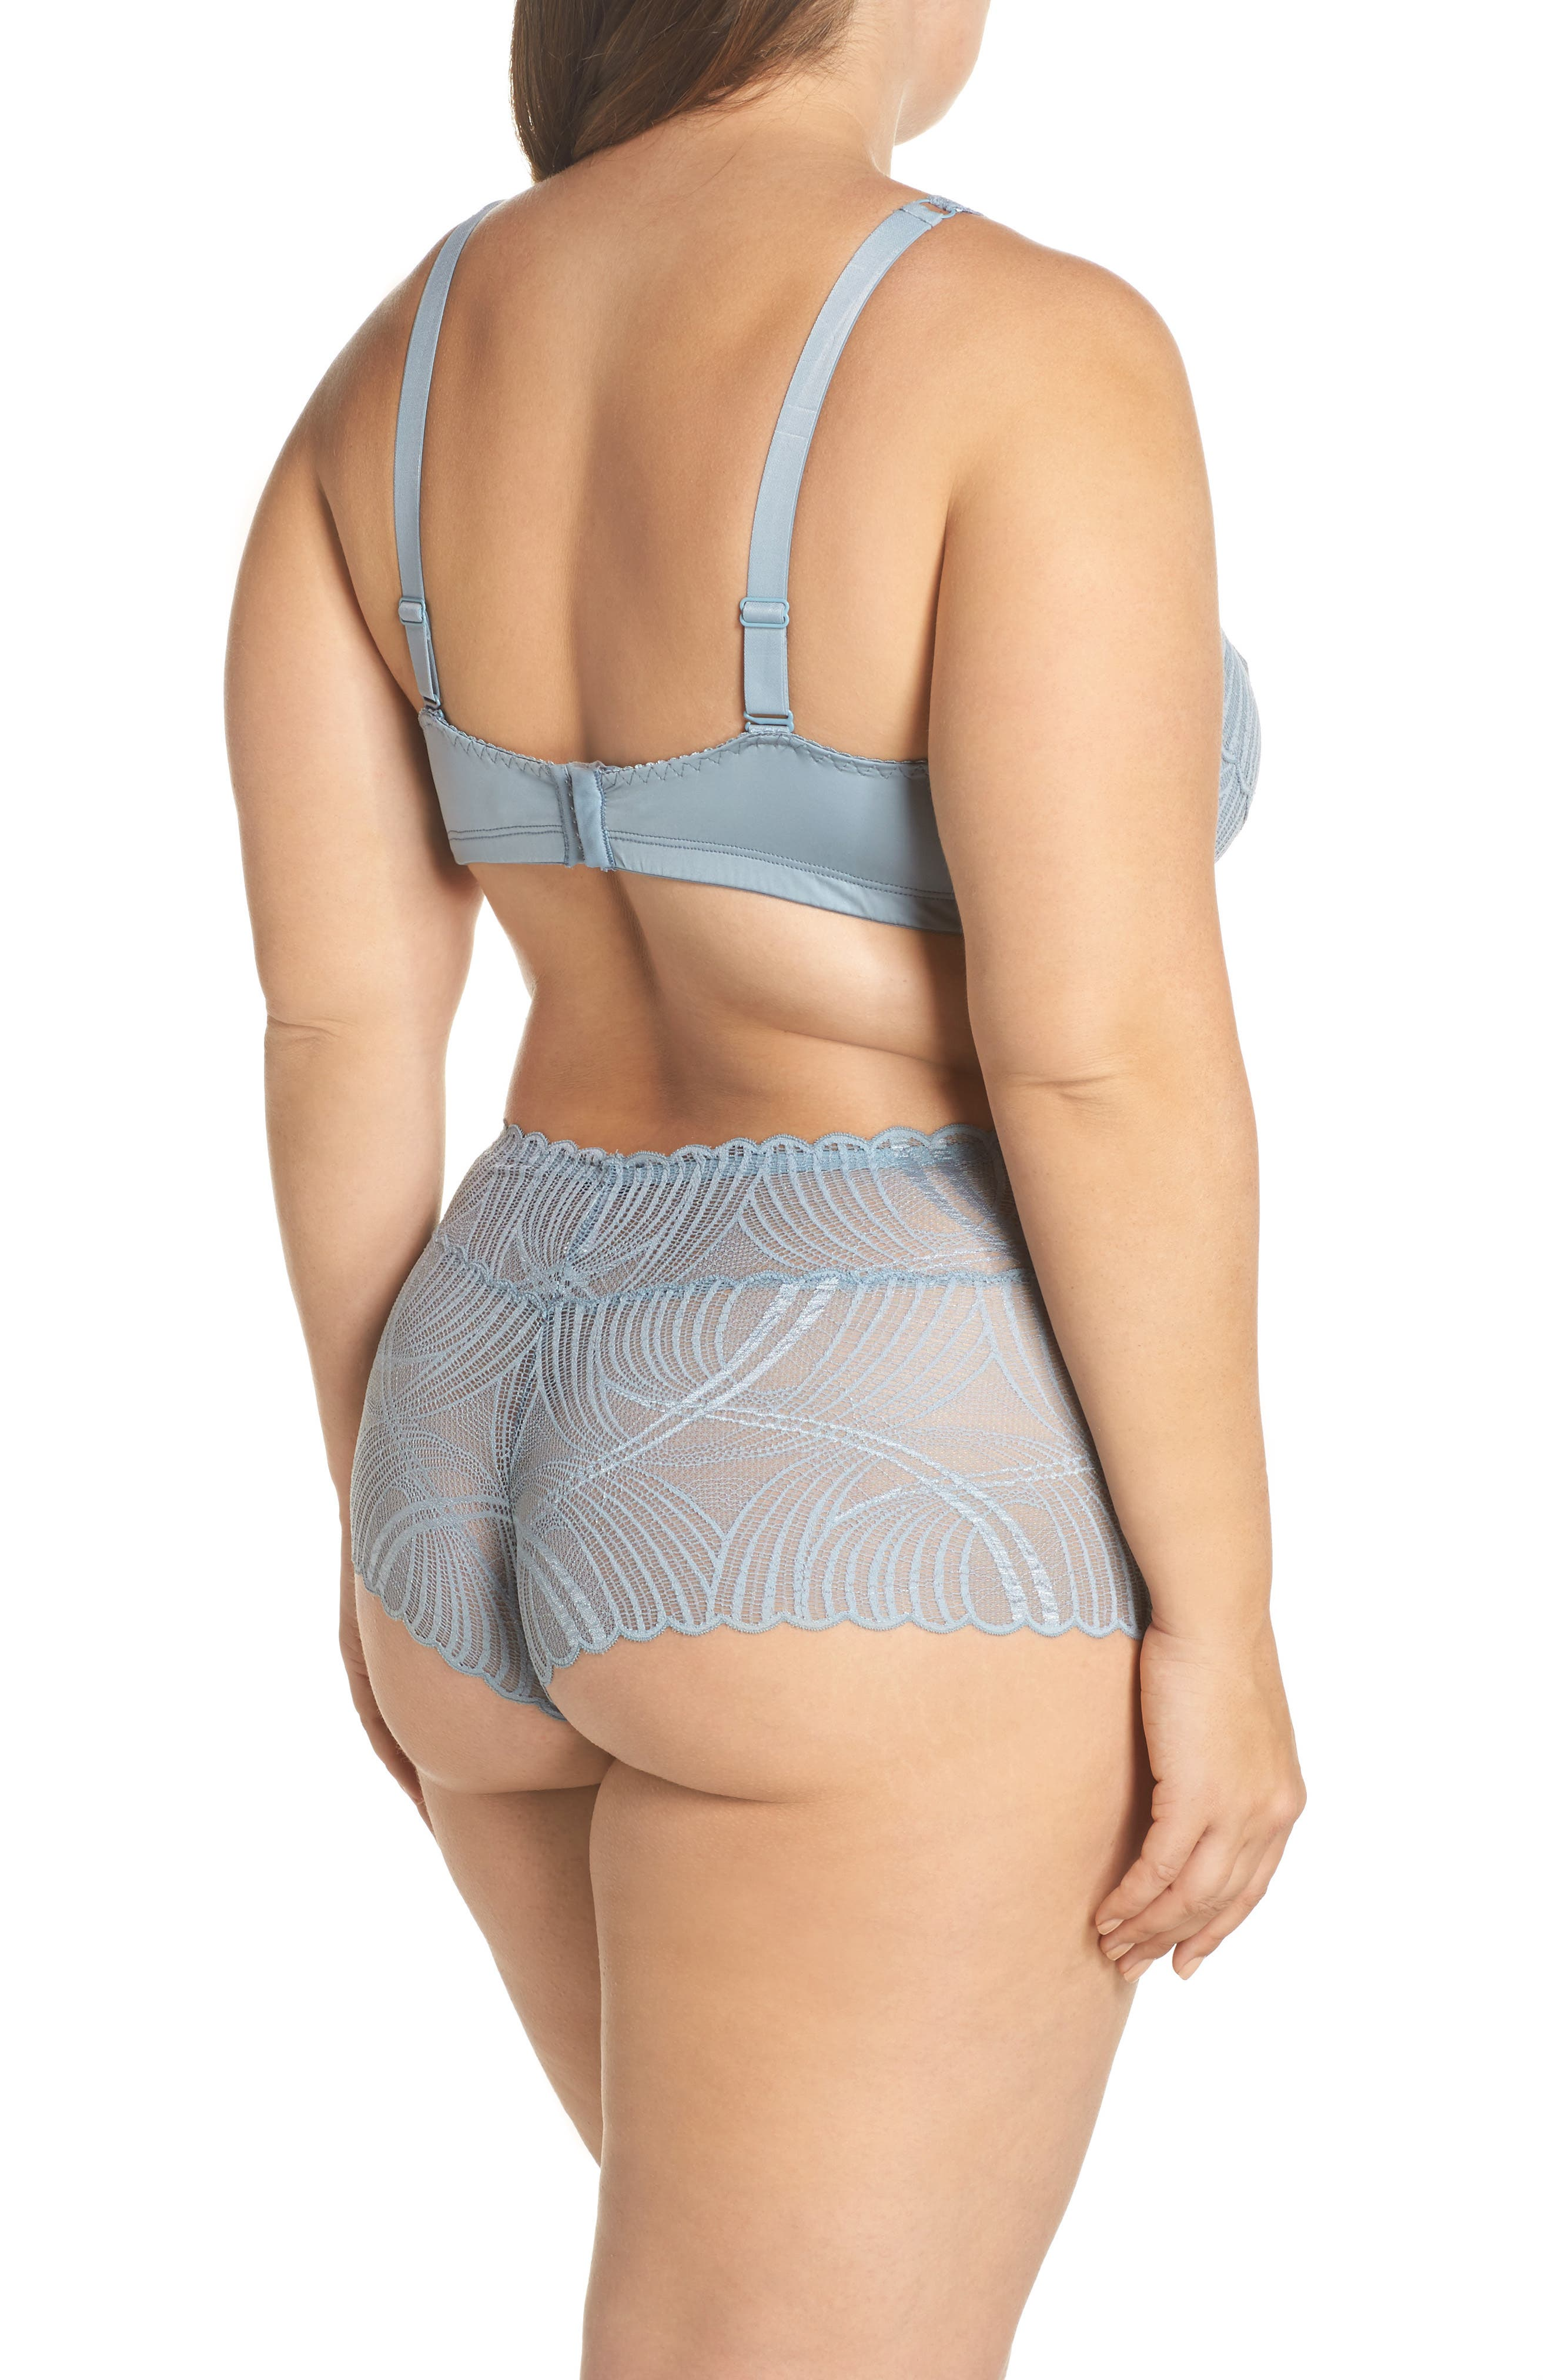 Minoa Naughtie Open Gusset Boyshorts,                             Alternate thumbnail 24, color,